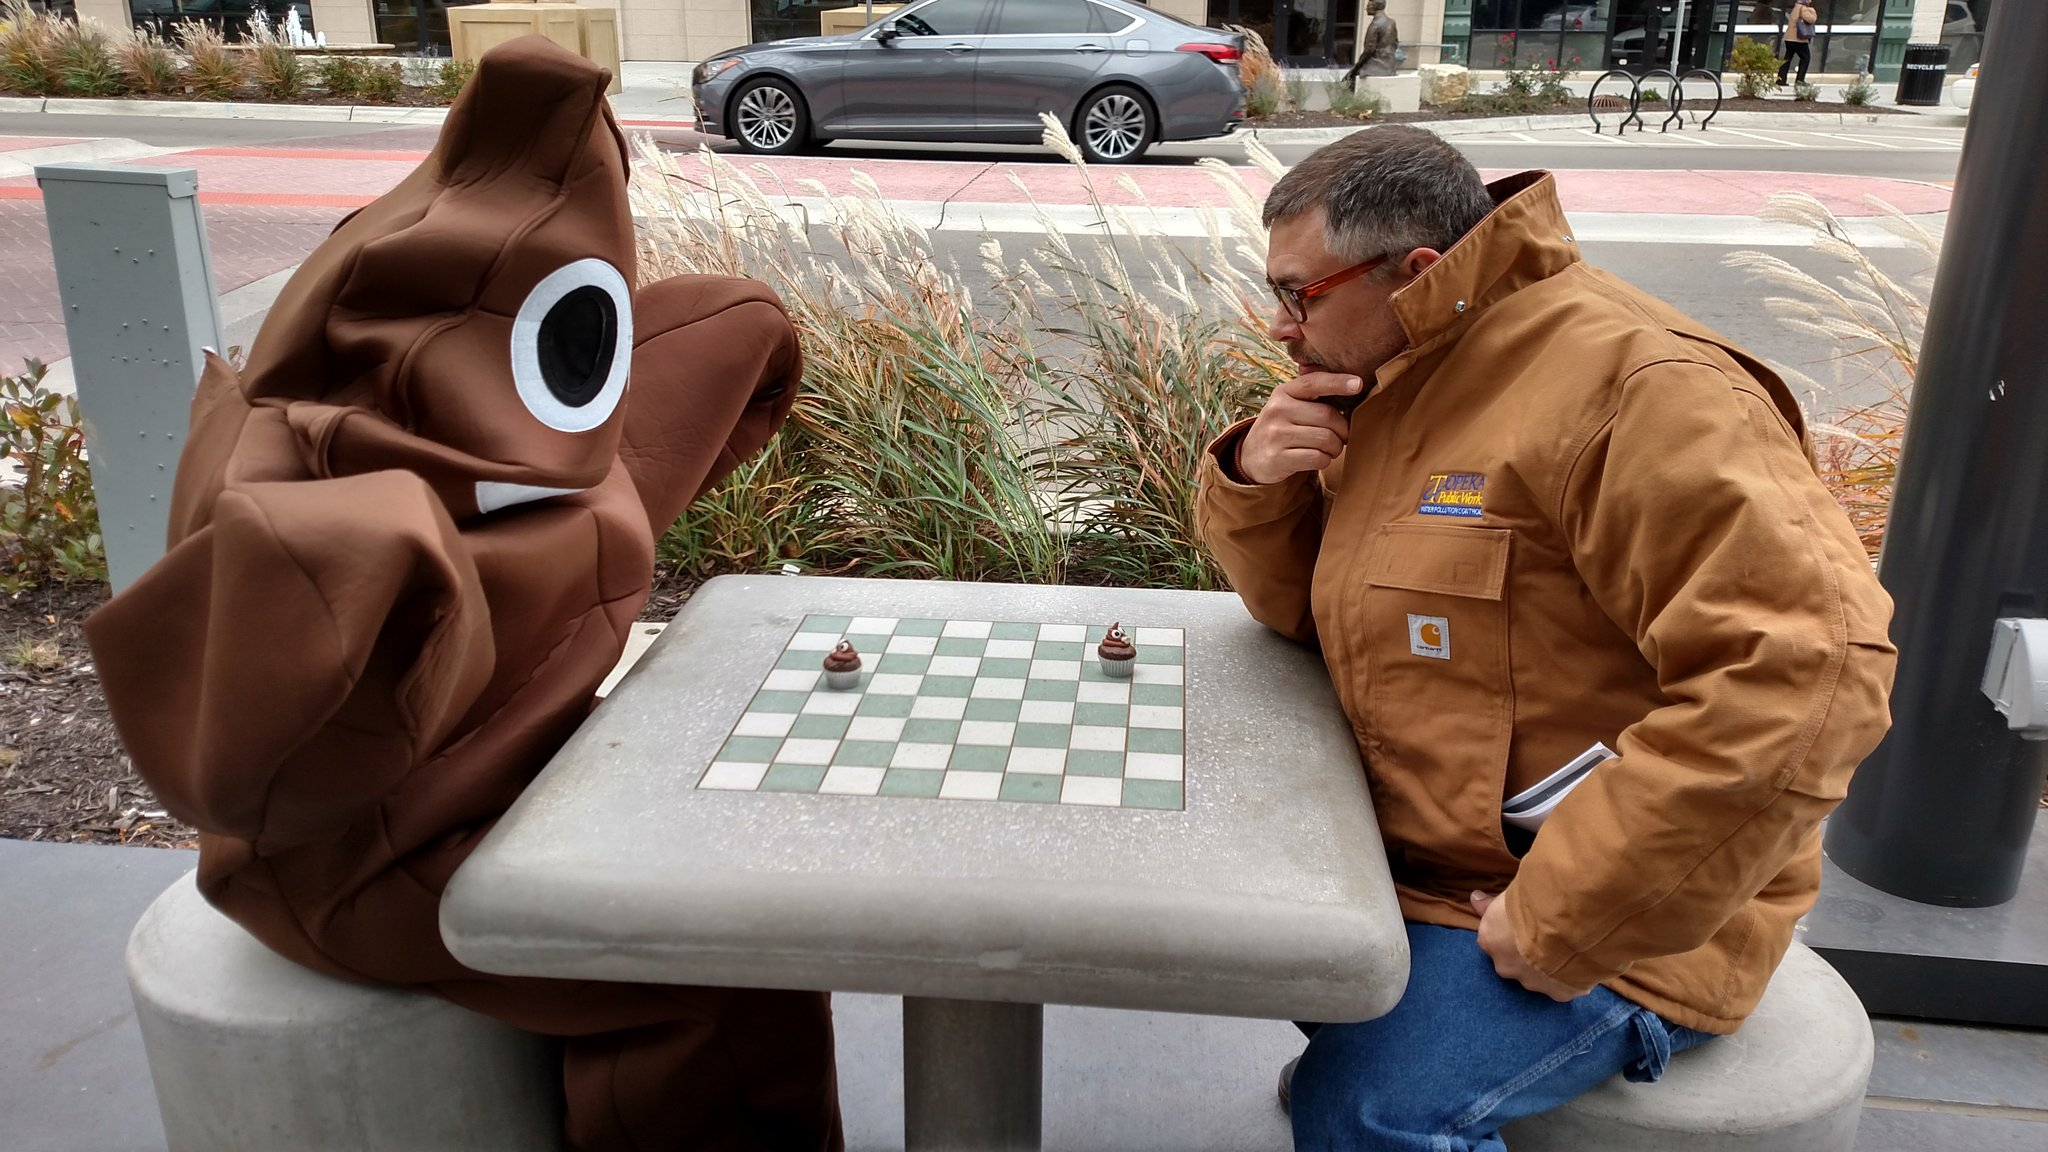 Your move, #topeka #worldtoiletday #poopsuit https://t.co/YzxDyZRYV2